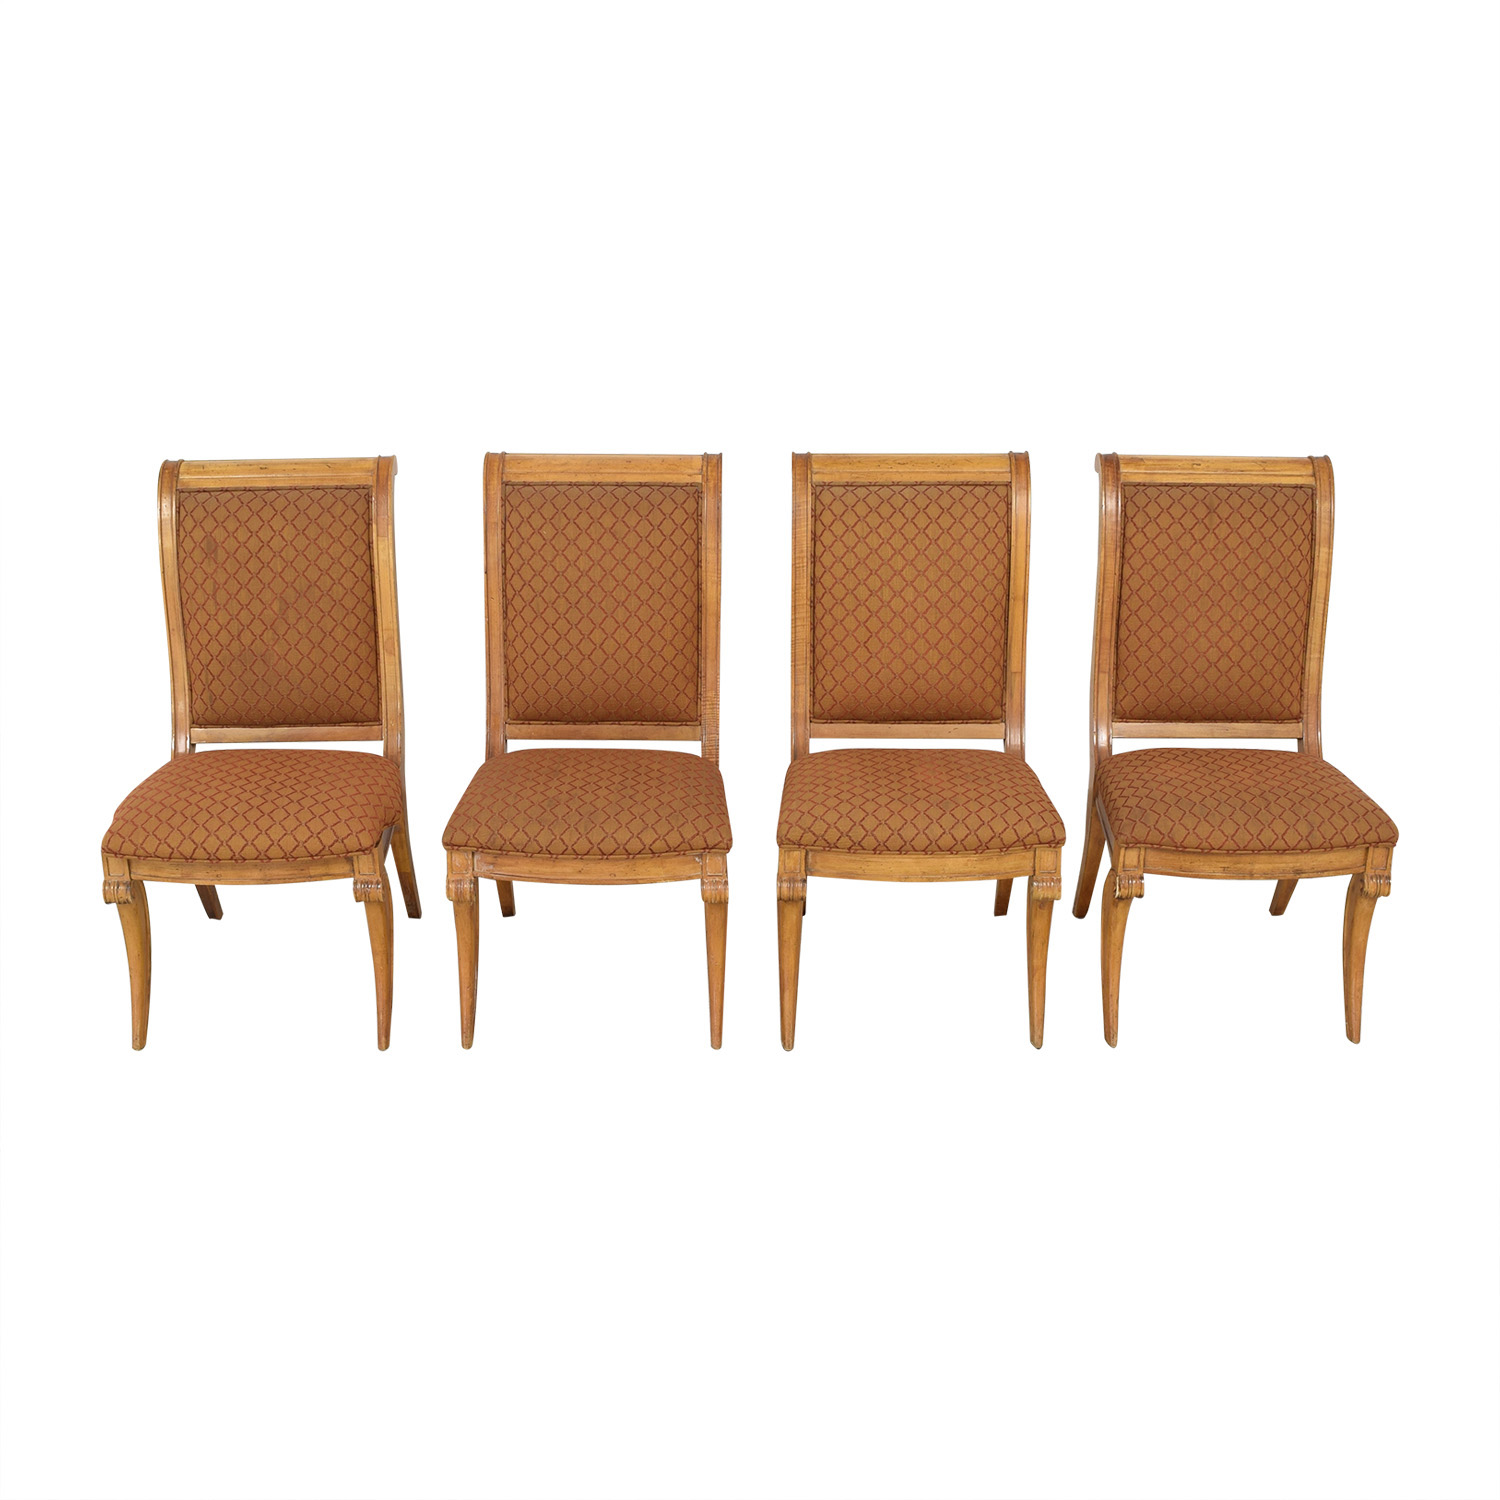 Century Furniture Century Furniture Dining Chairs used